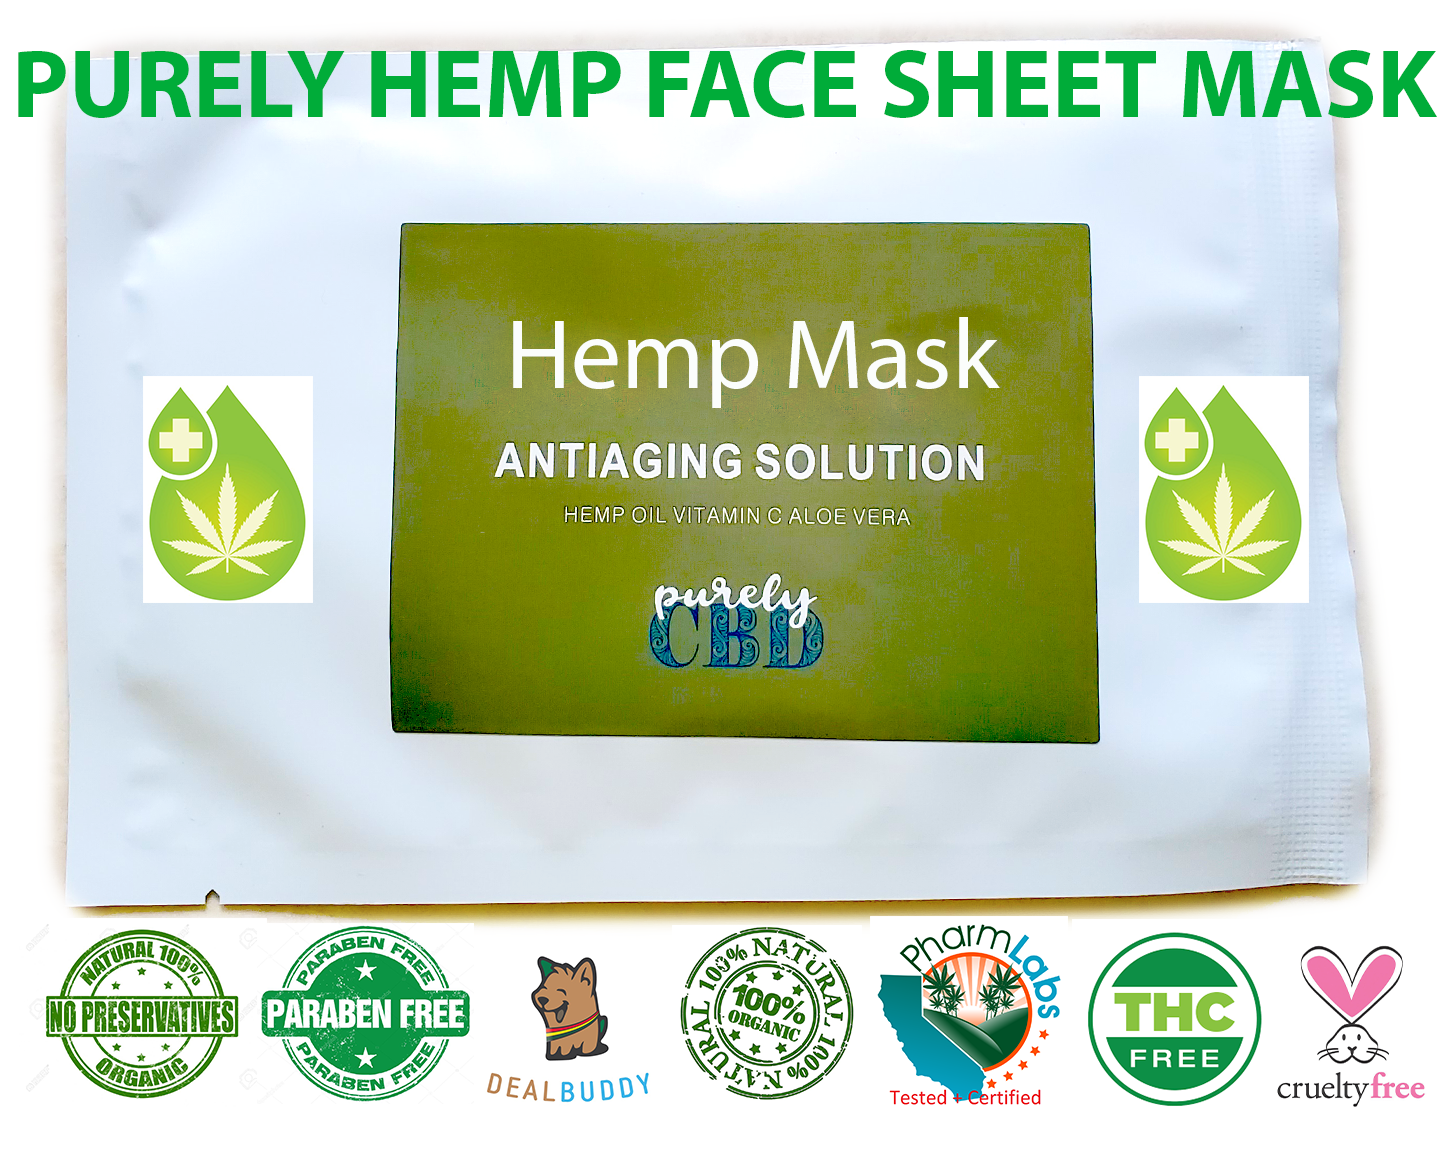 Pure Organic Hemp Seed Oil Face Sheet Mask For Wrinkle